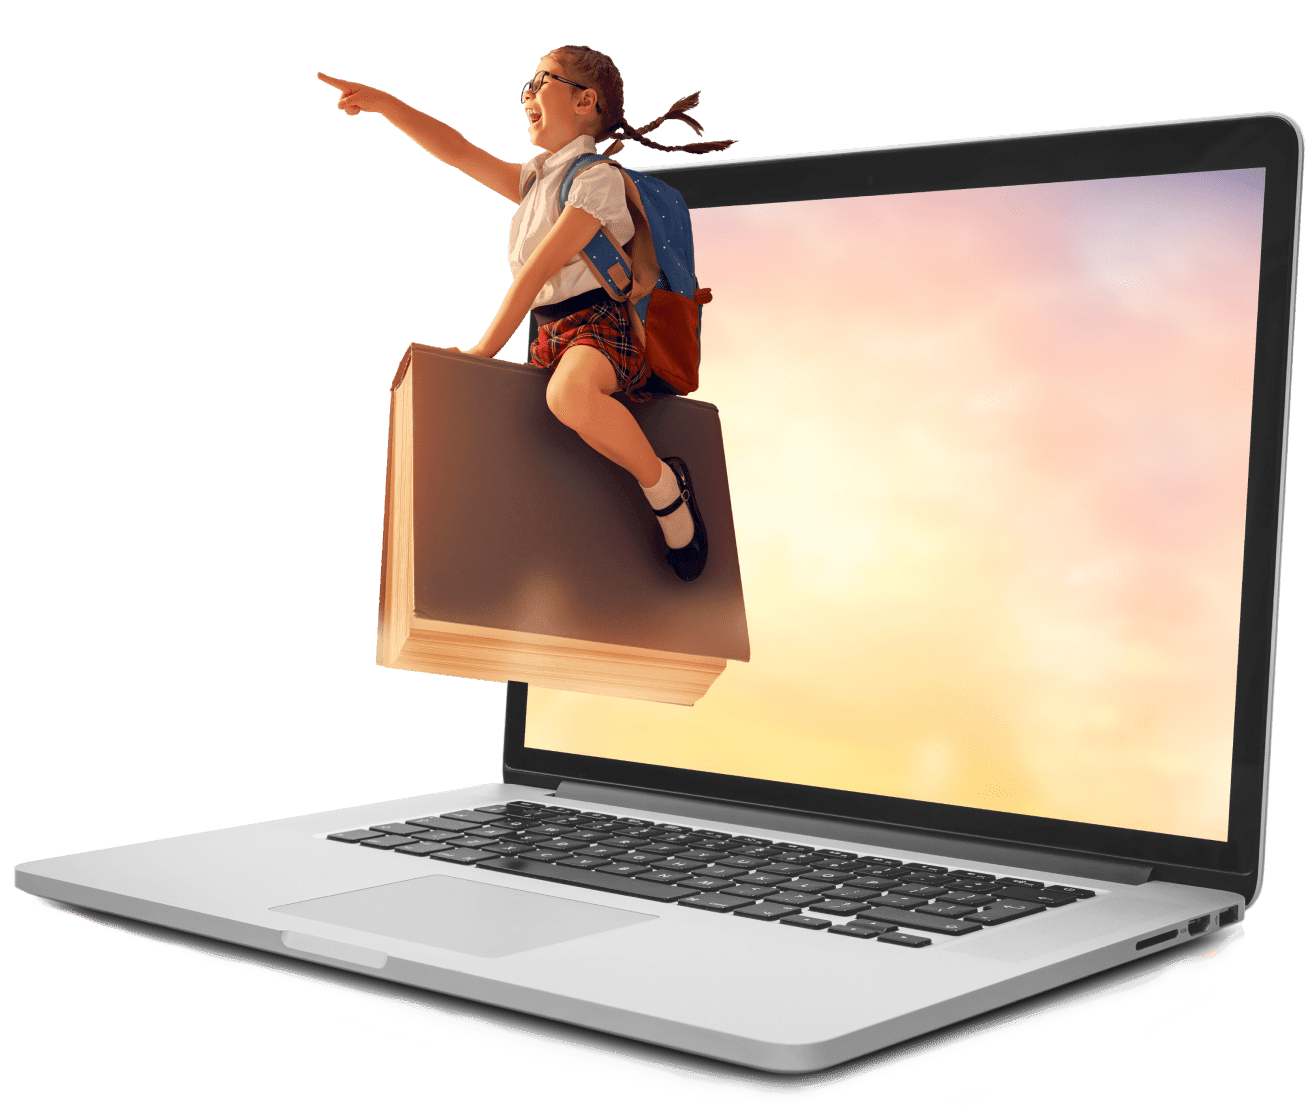 little girl flying on book out of computer screen